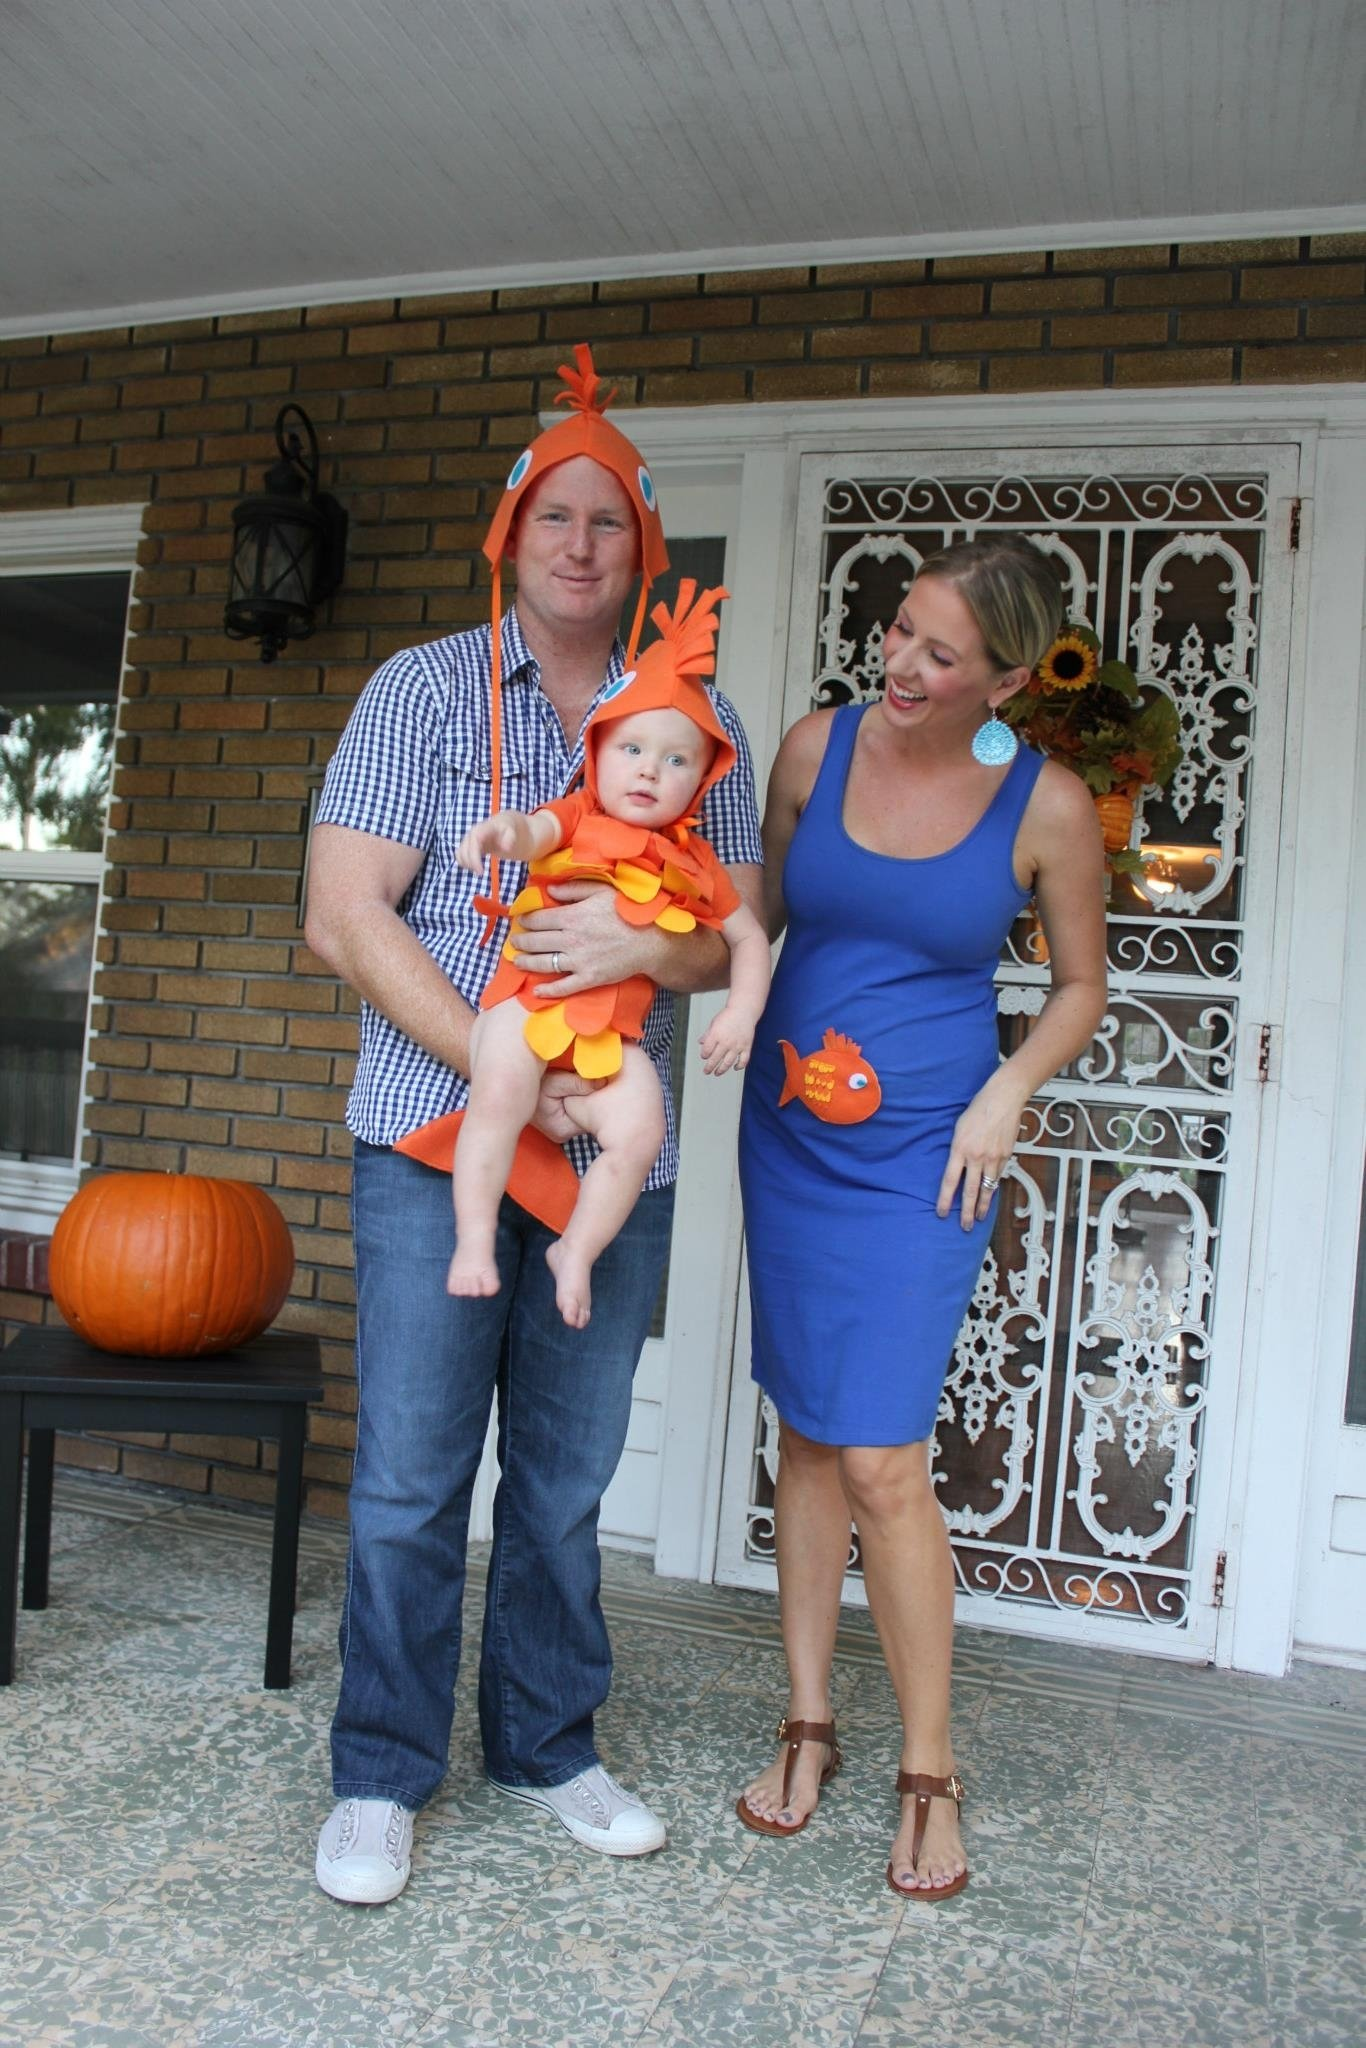 10 Amazing Family Halloween Costume Ideas With Baby diy fish costume for the family no sewing 2 2021